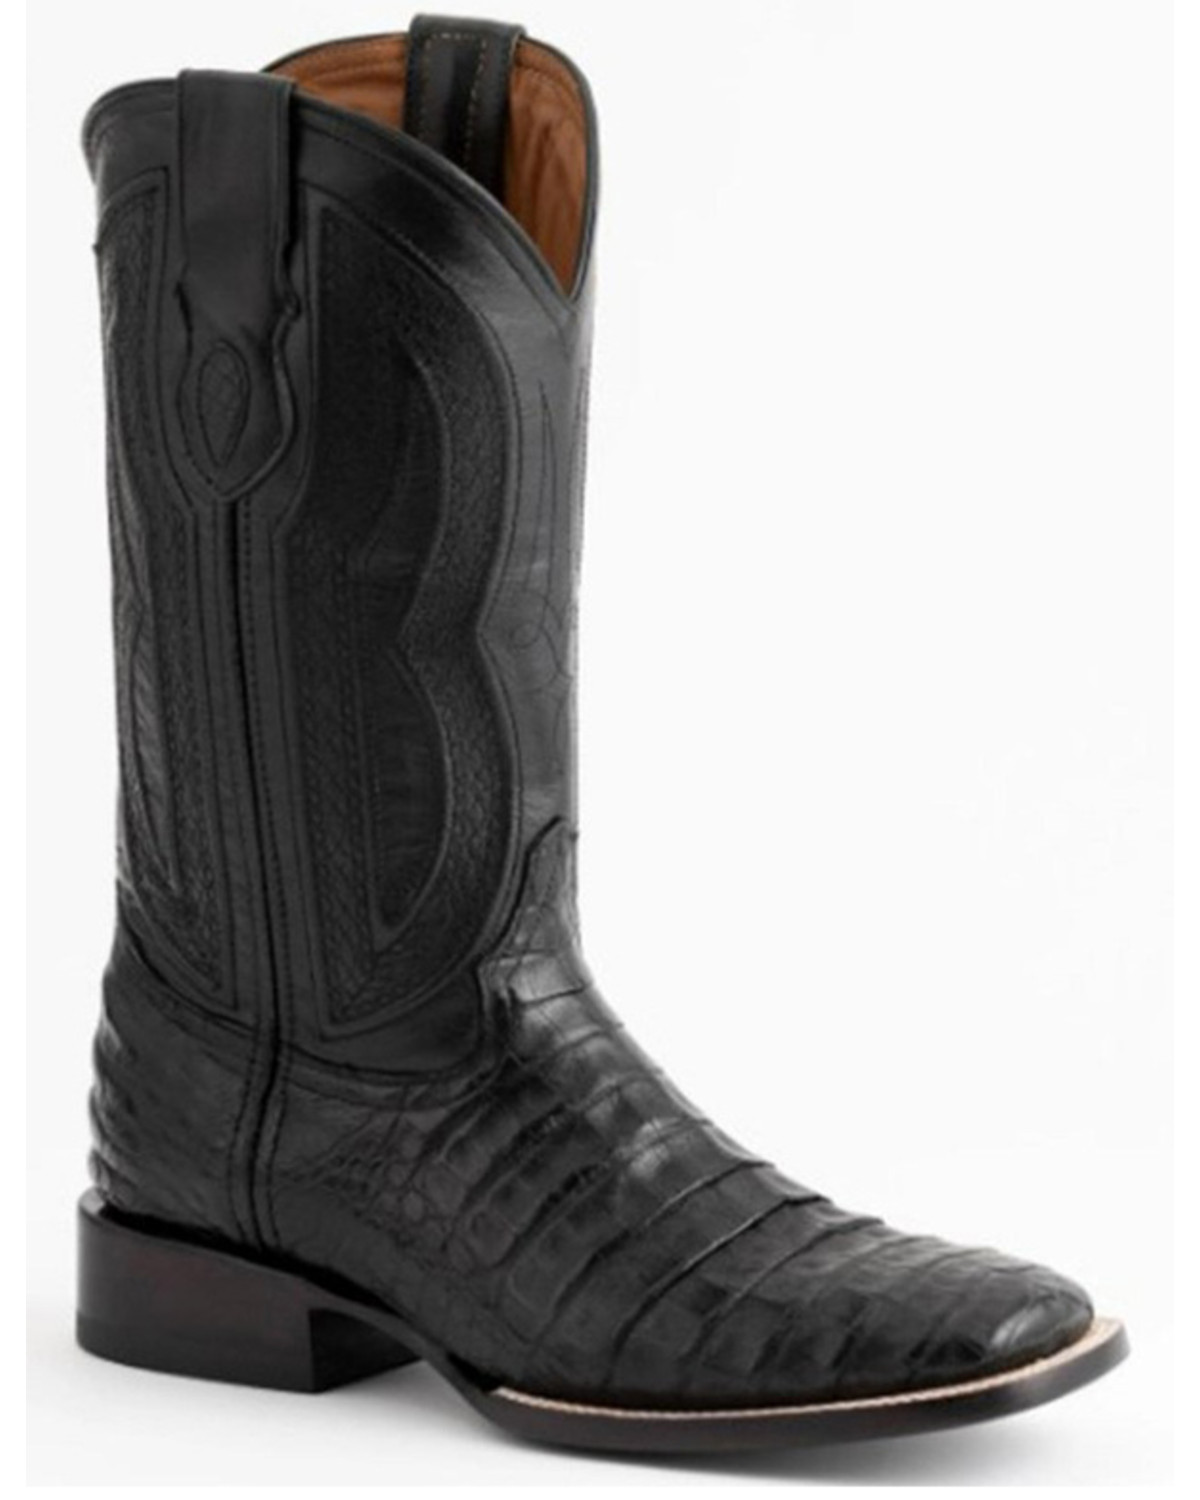 Ferrini Black Caiman Belly Cowboy Boots Wide Square Toe